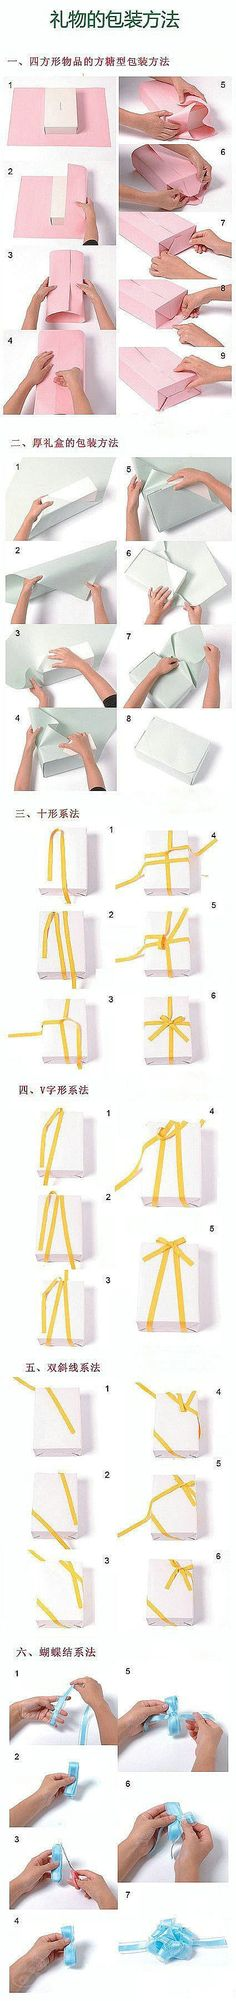 the correct way to wrap your presents -  Japanese way!